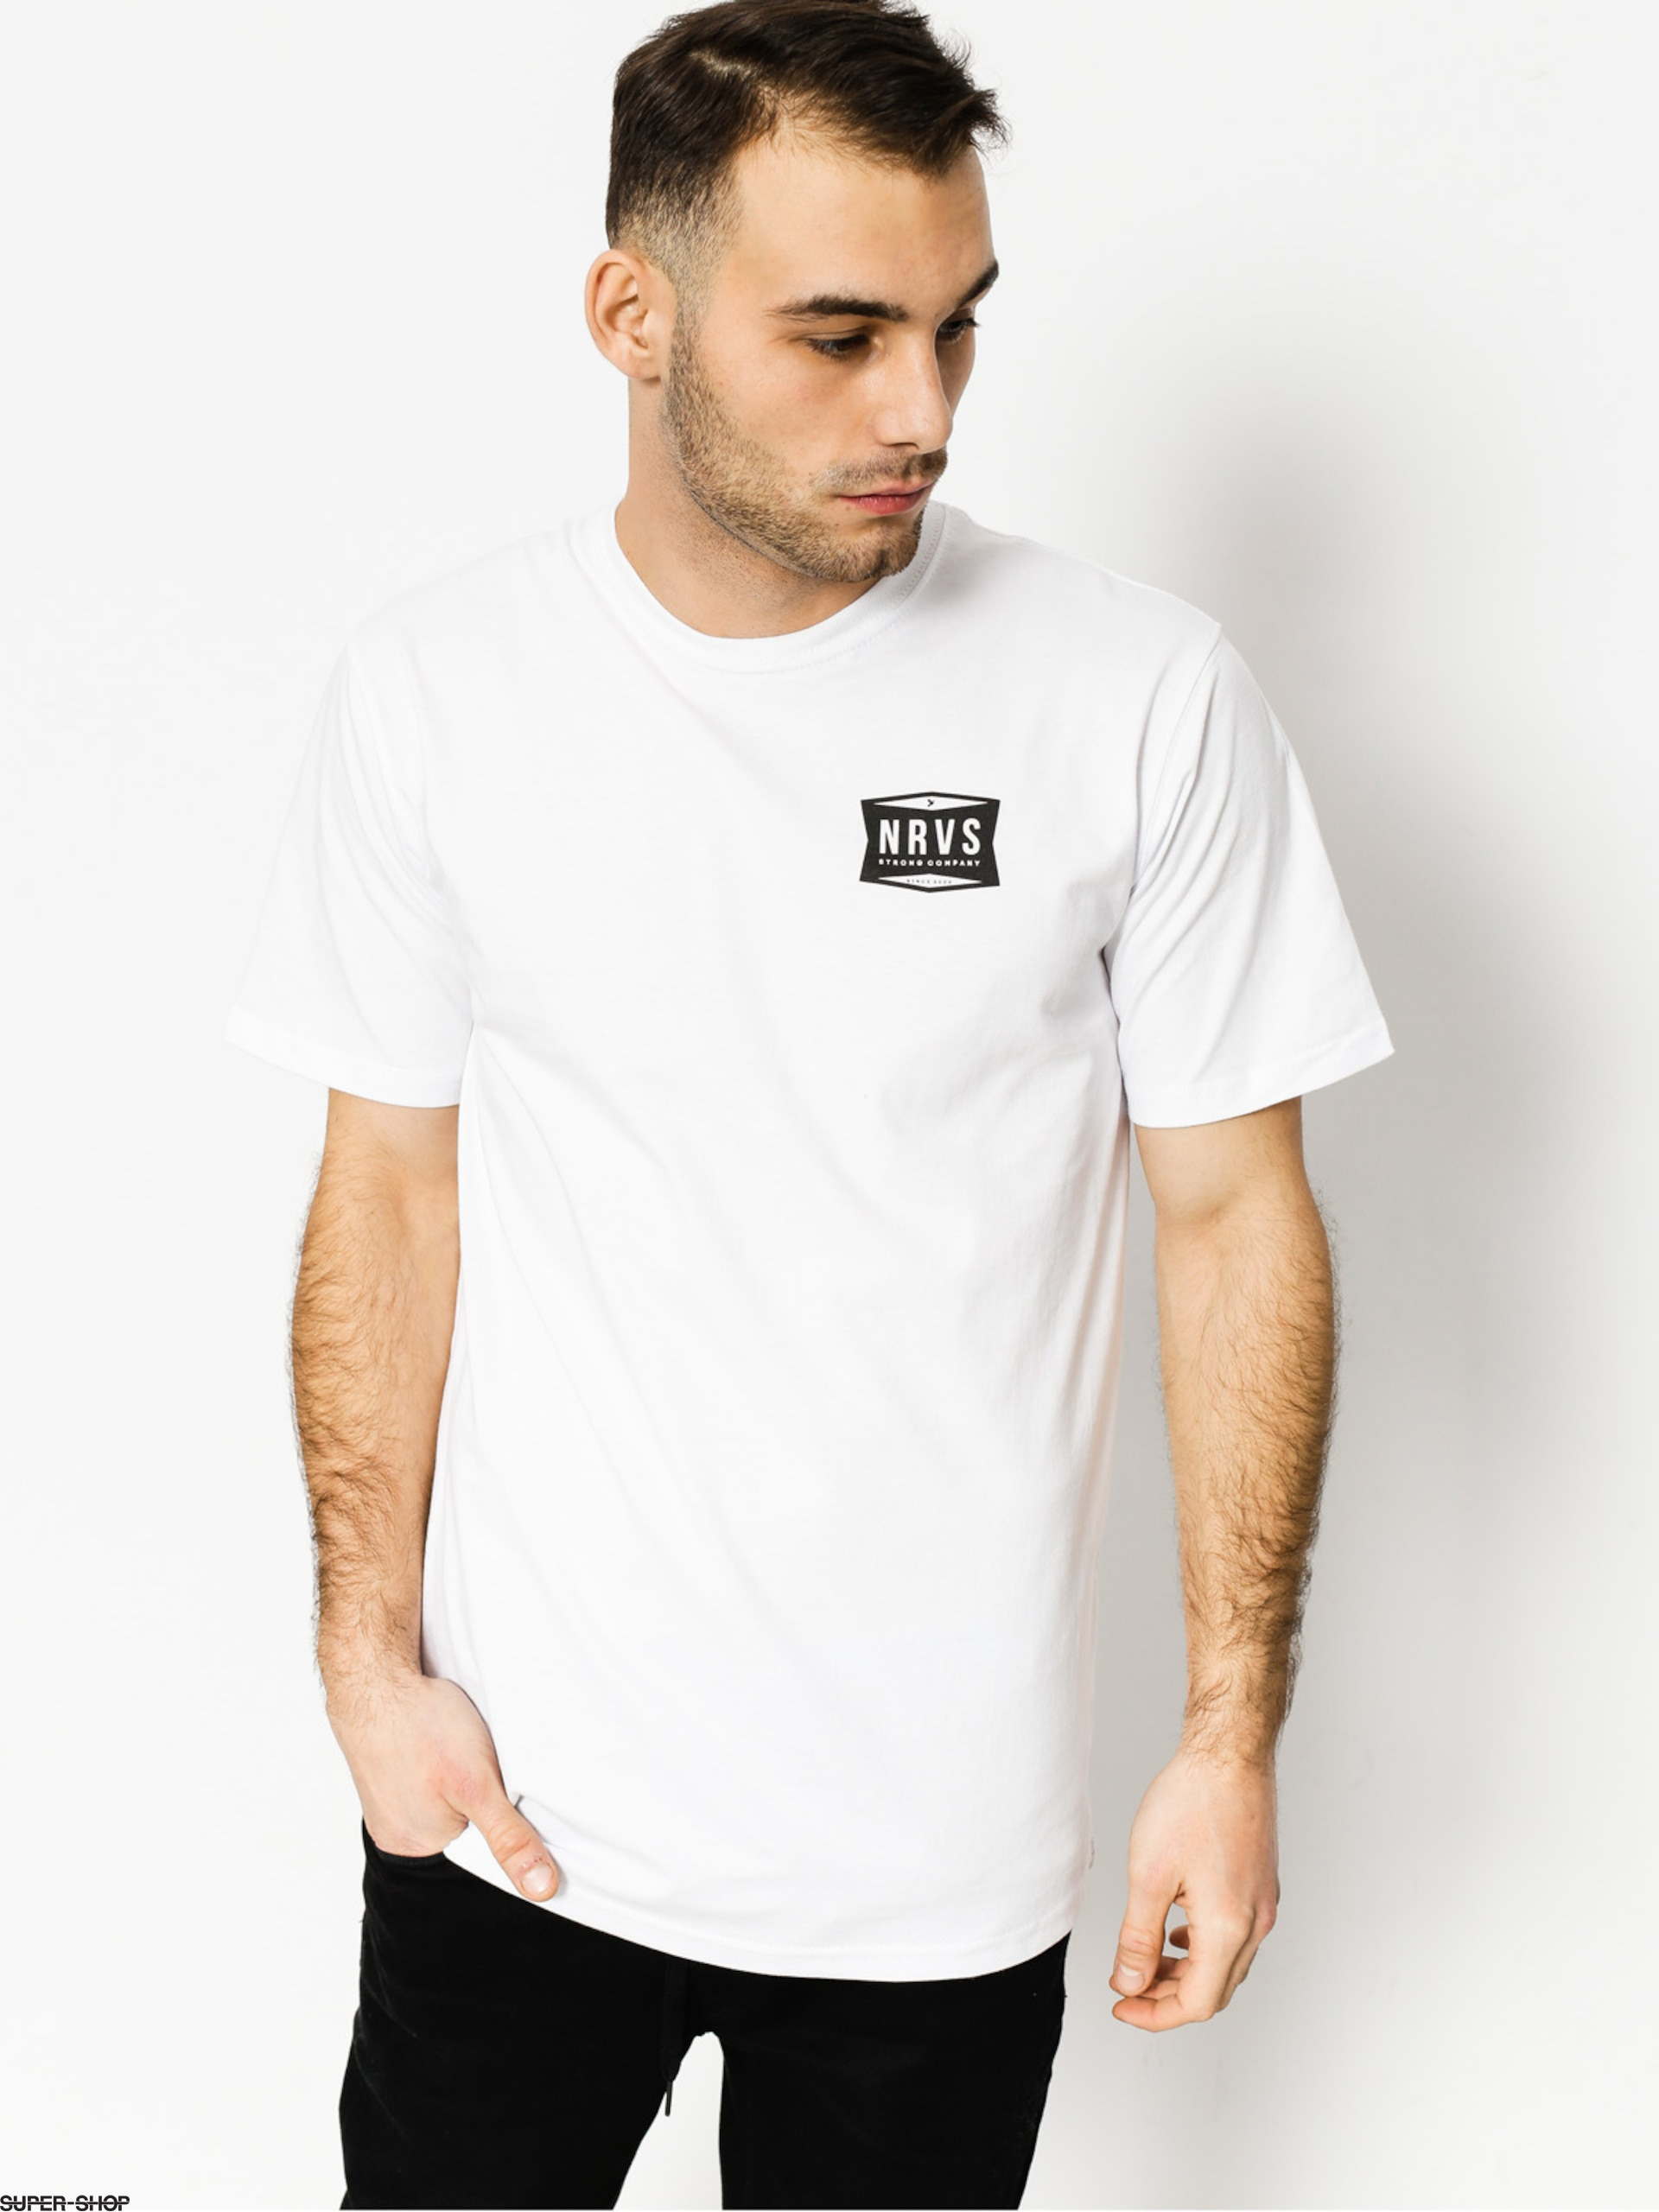 Nervous T-Shirt Shop (white)